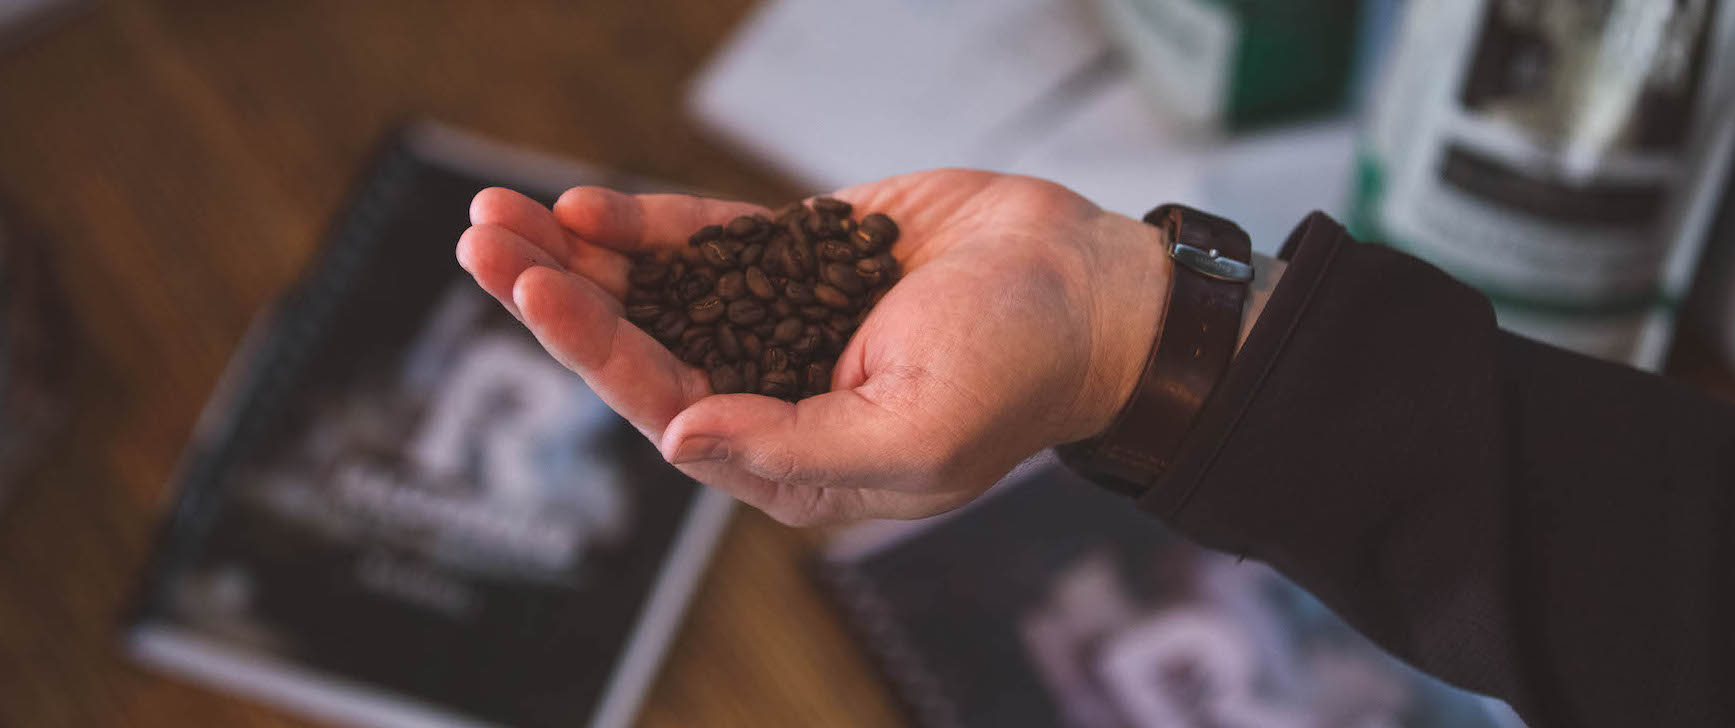 Hand holding roasted coffee beans